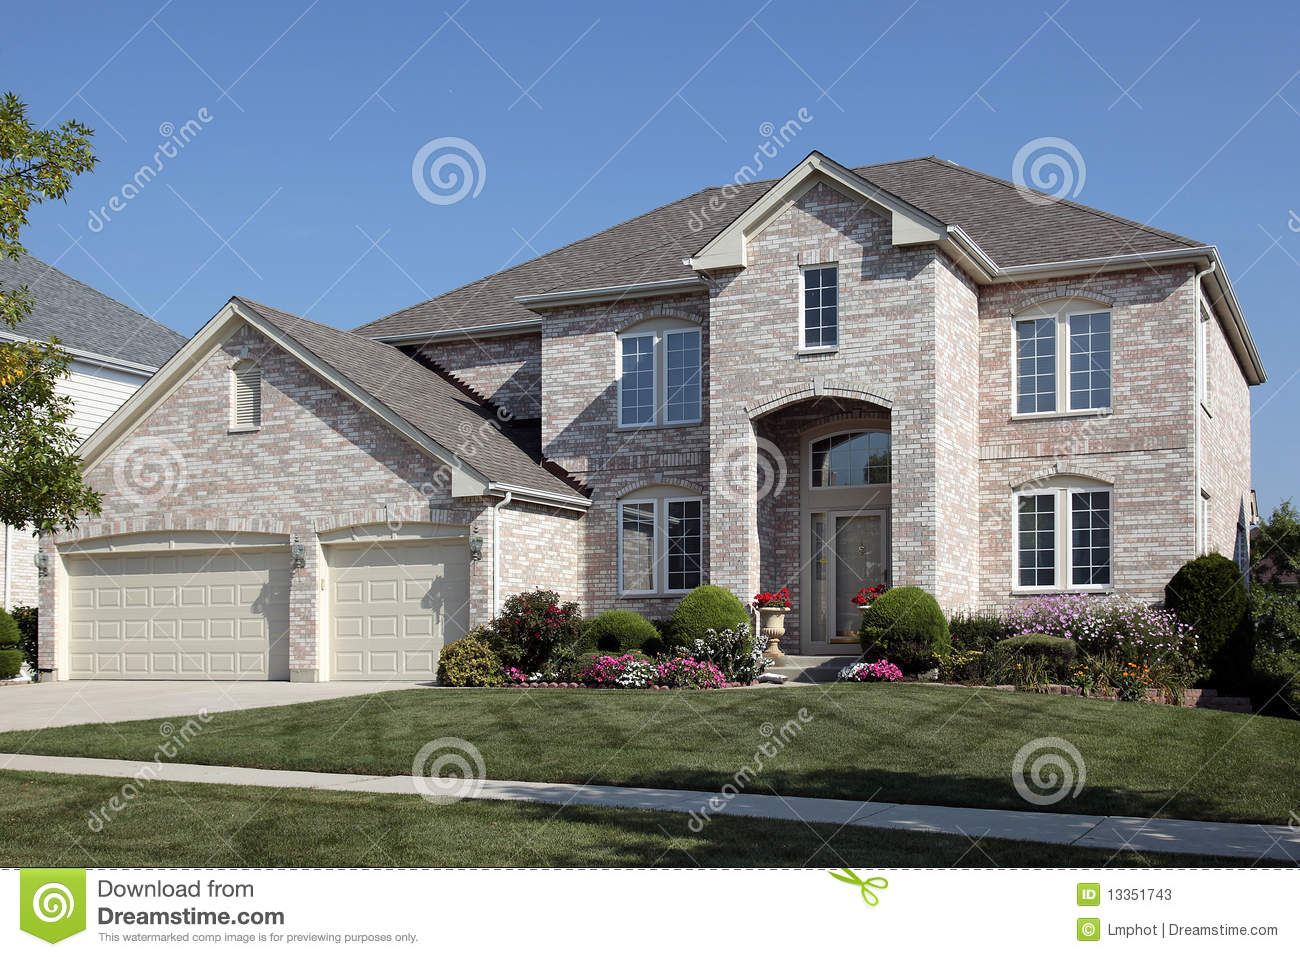 Home With Arched Entry And Three Car Garage Stock Photos